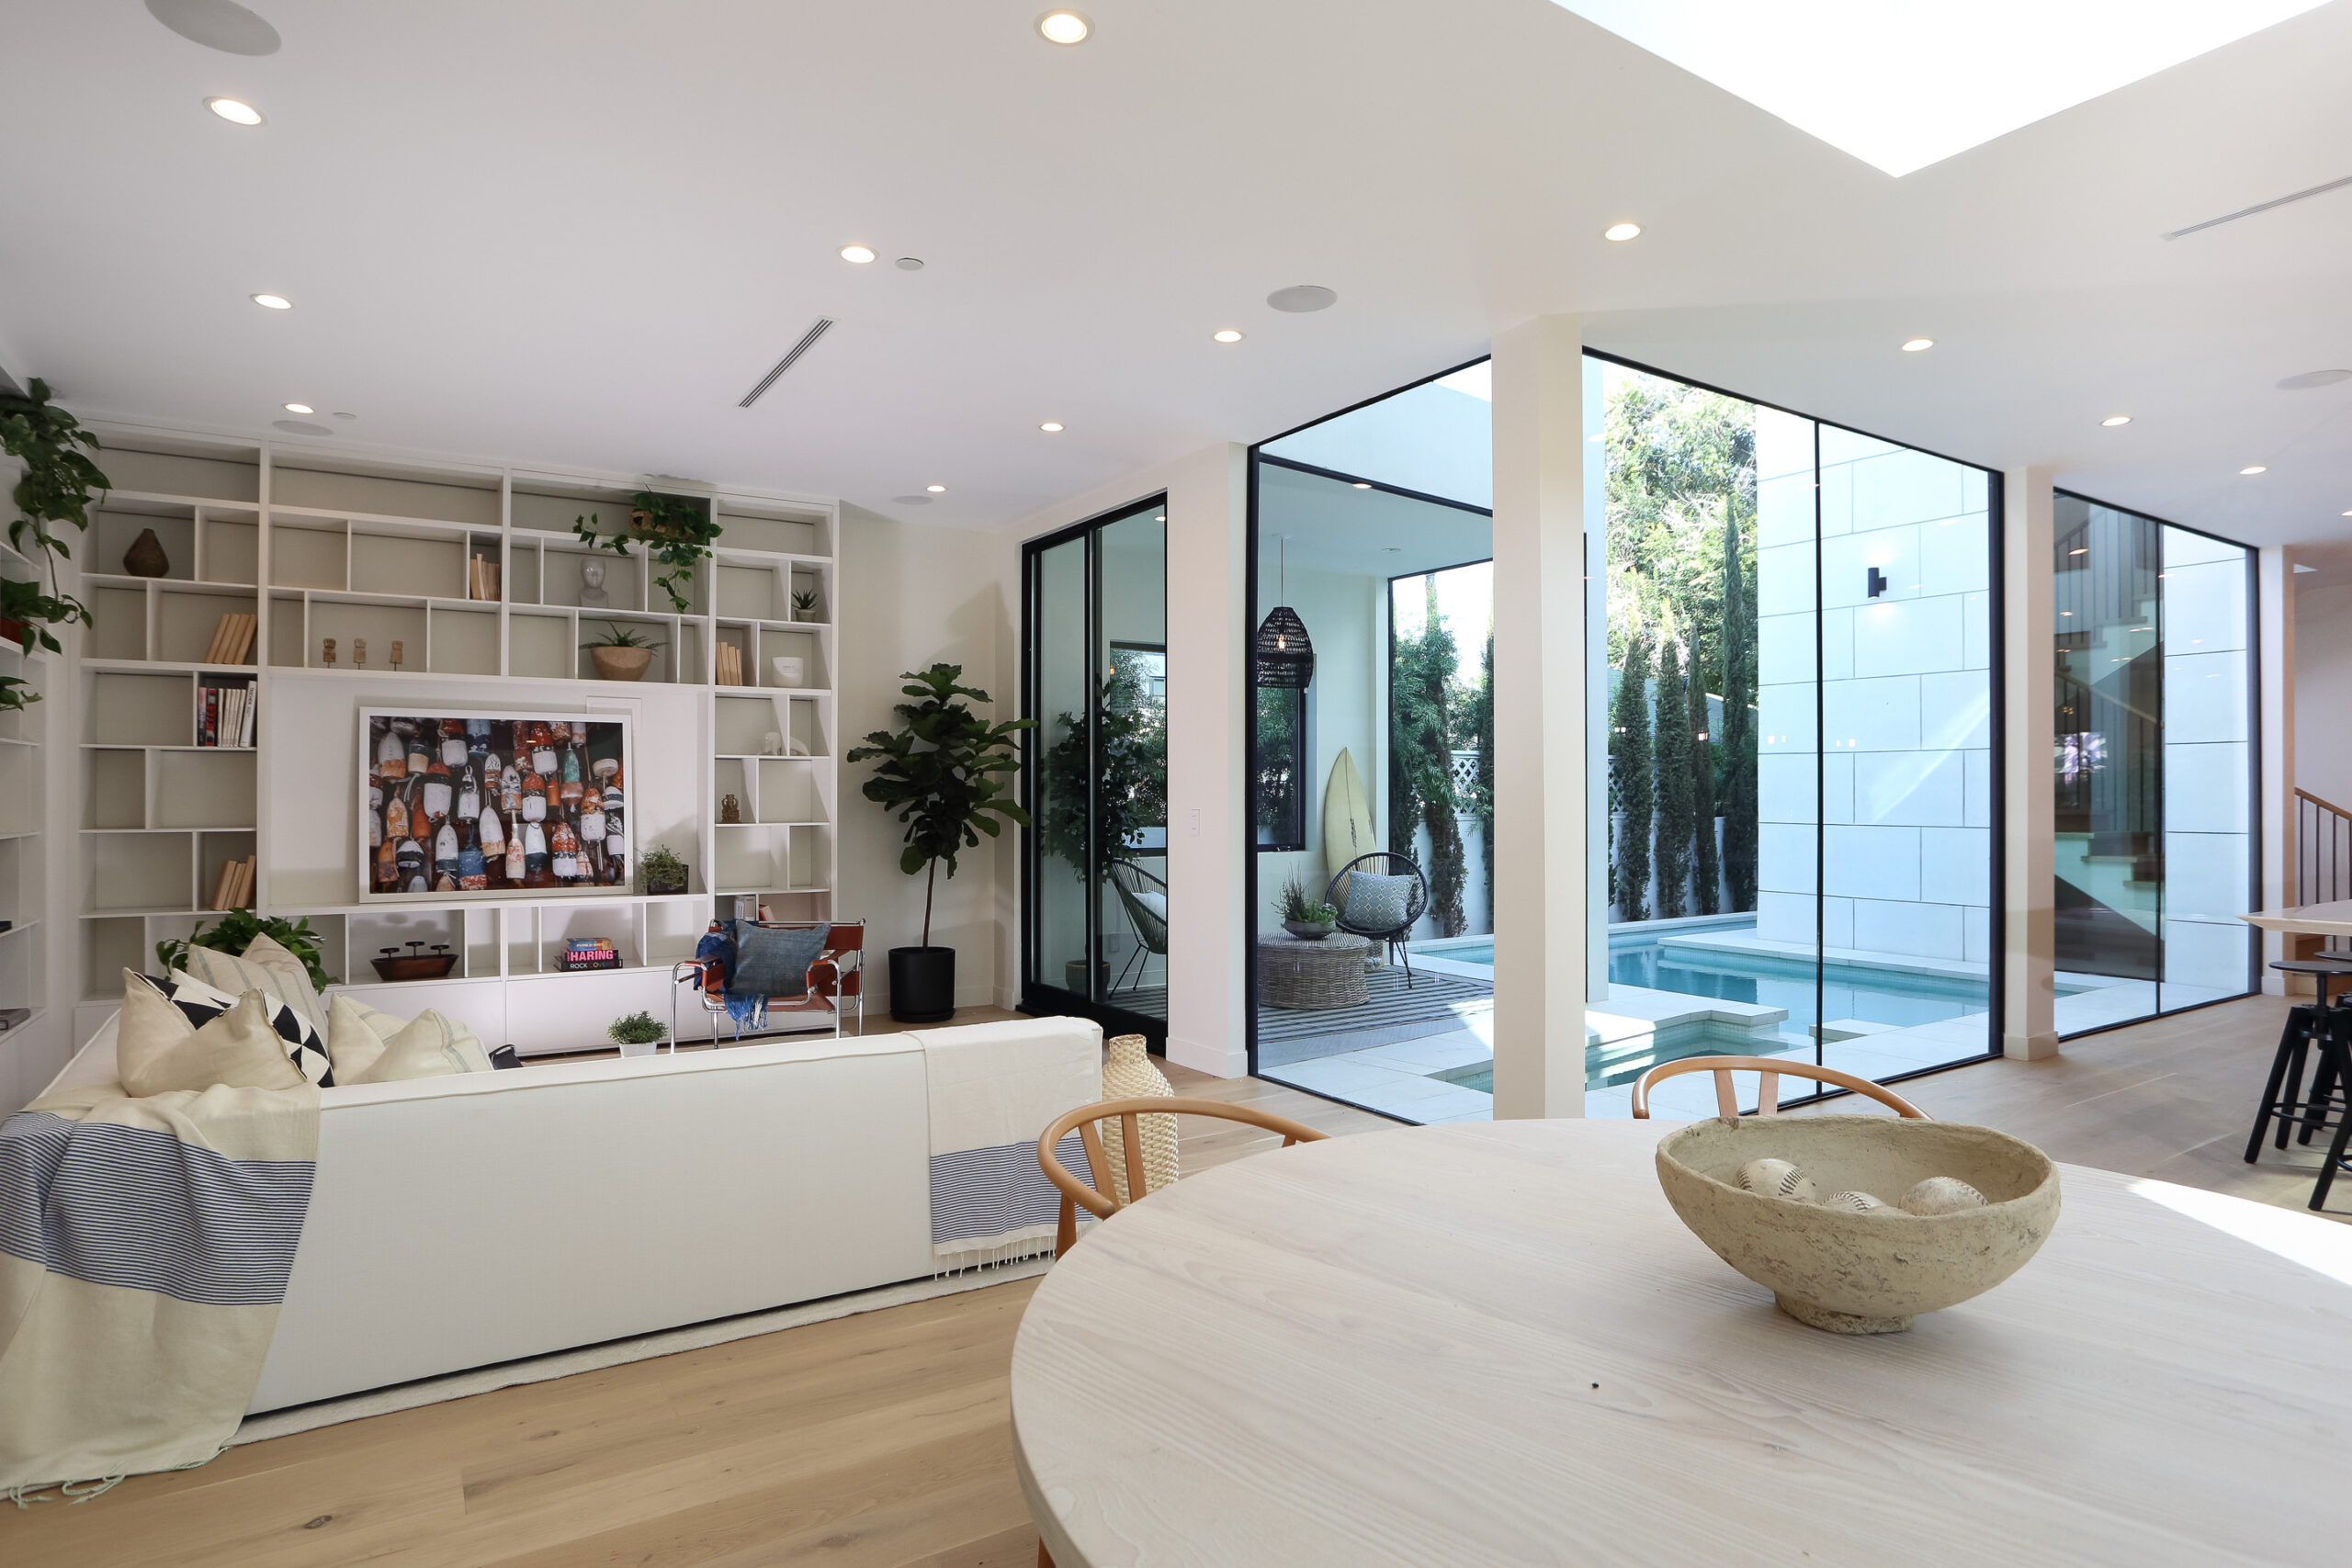 A Glamorous Yet Welcoming Home In Venice Beach